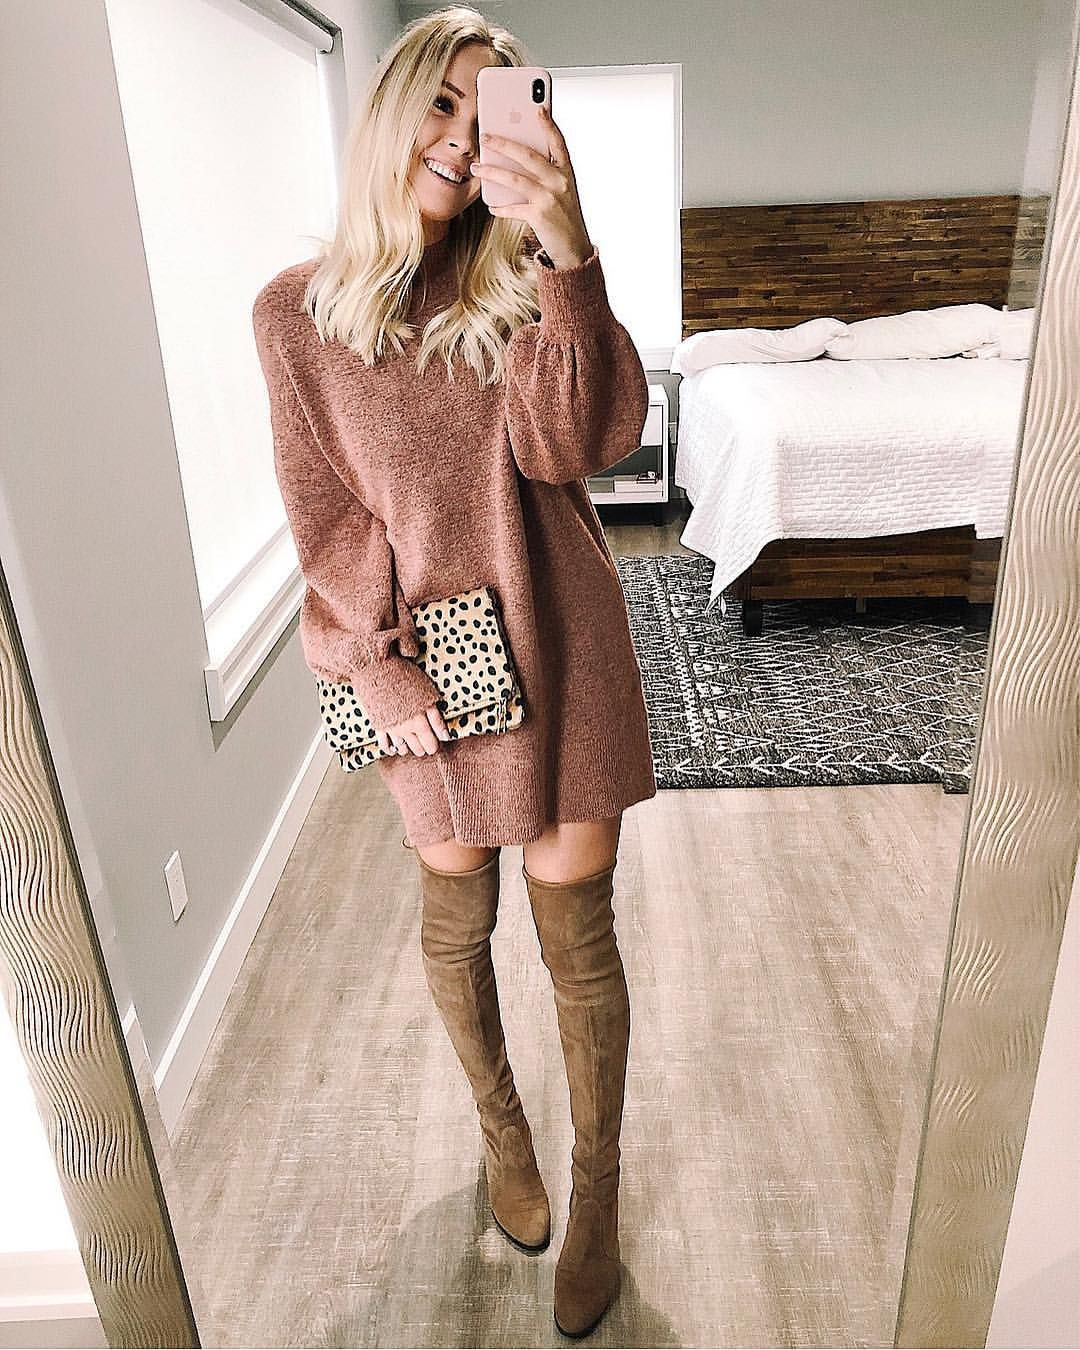 6f4ba59f031f Sweater dress with over the knee boots   topshop   Stuart weitzman   mirror  selfie   fashion blogger